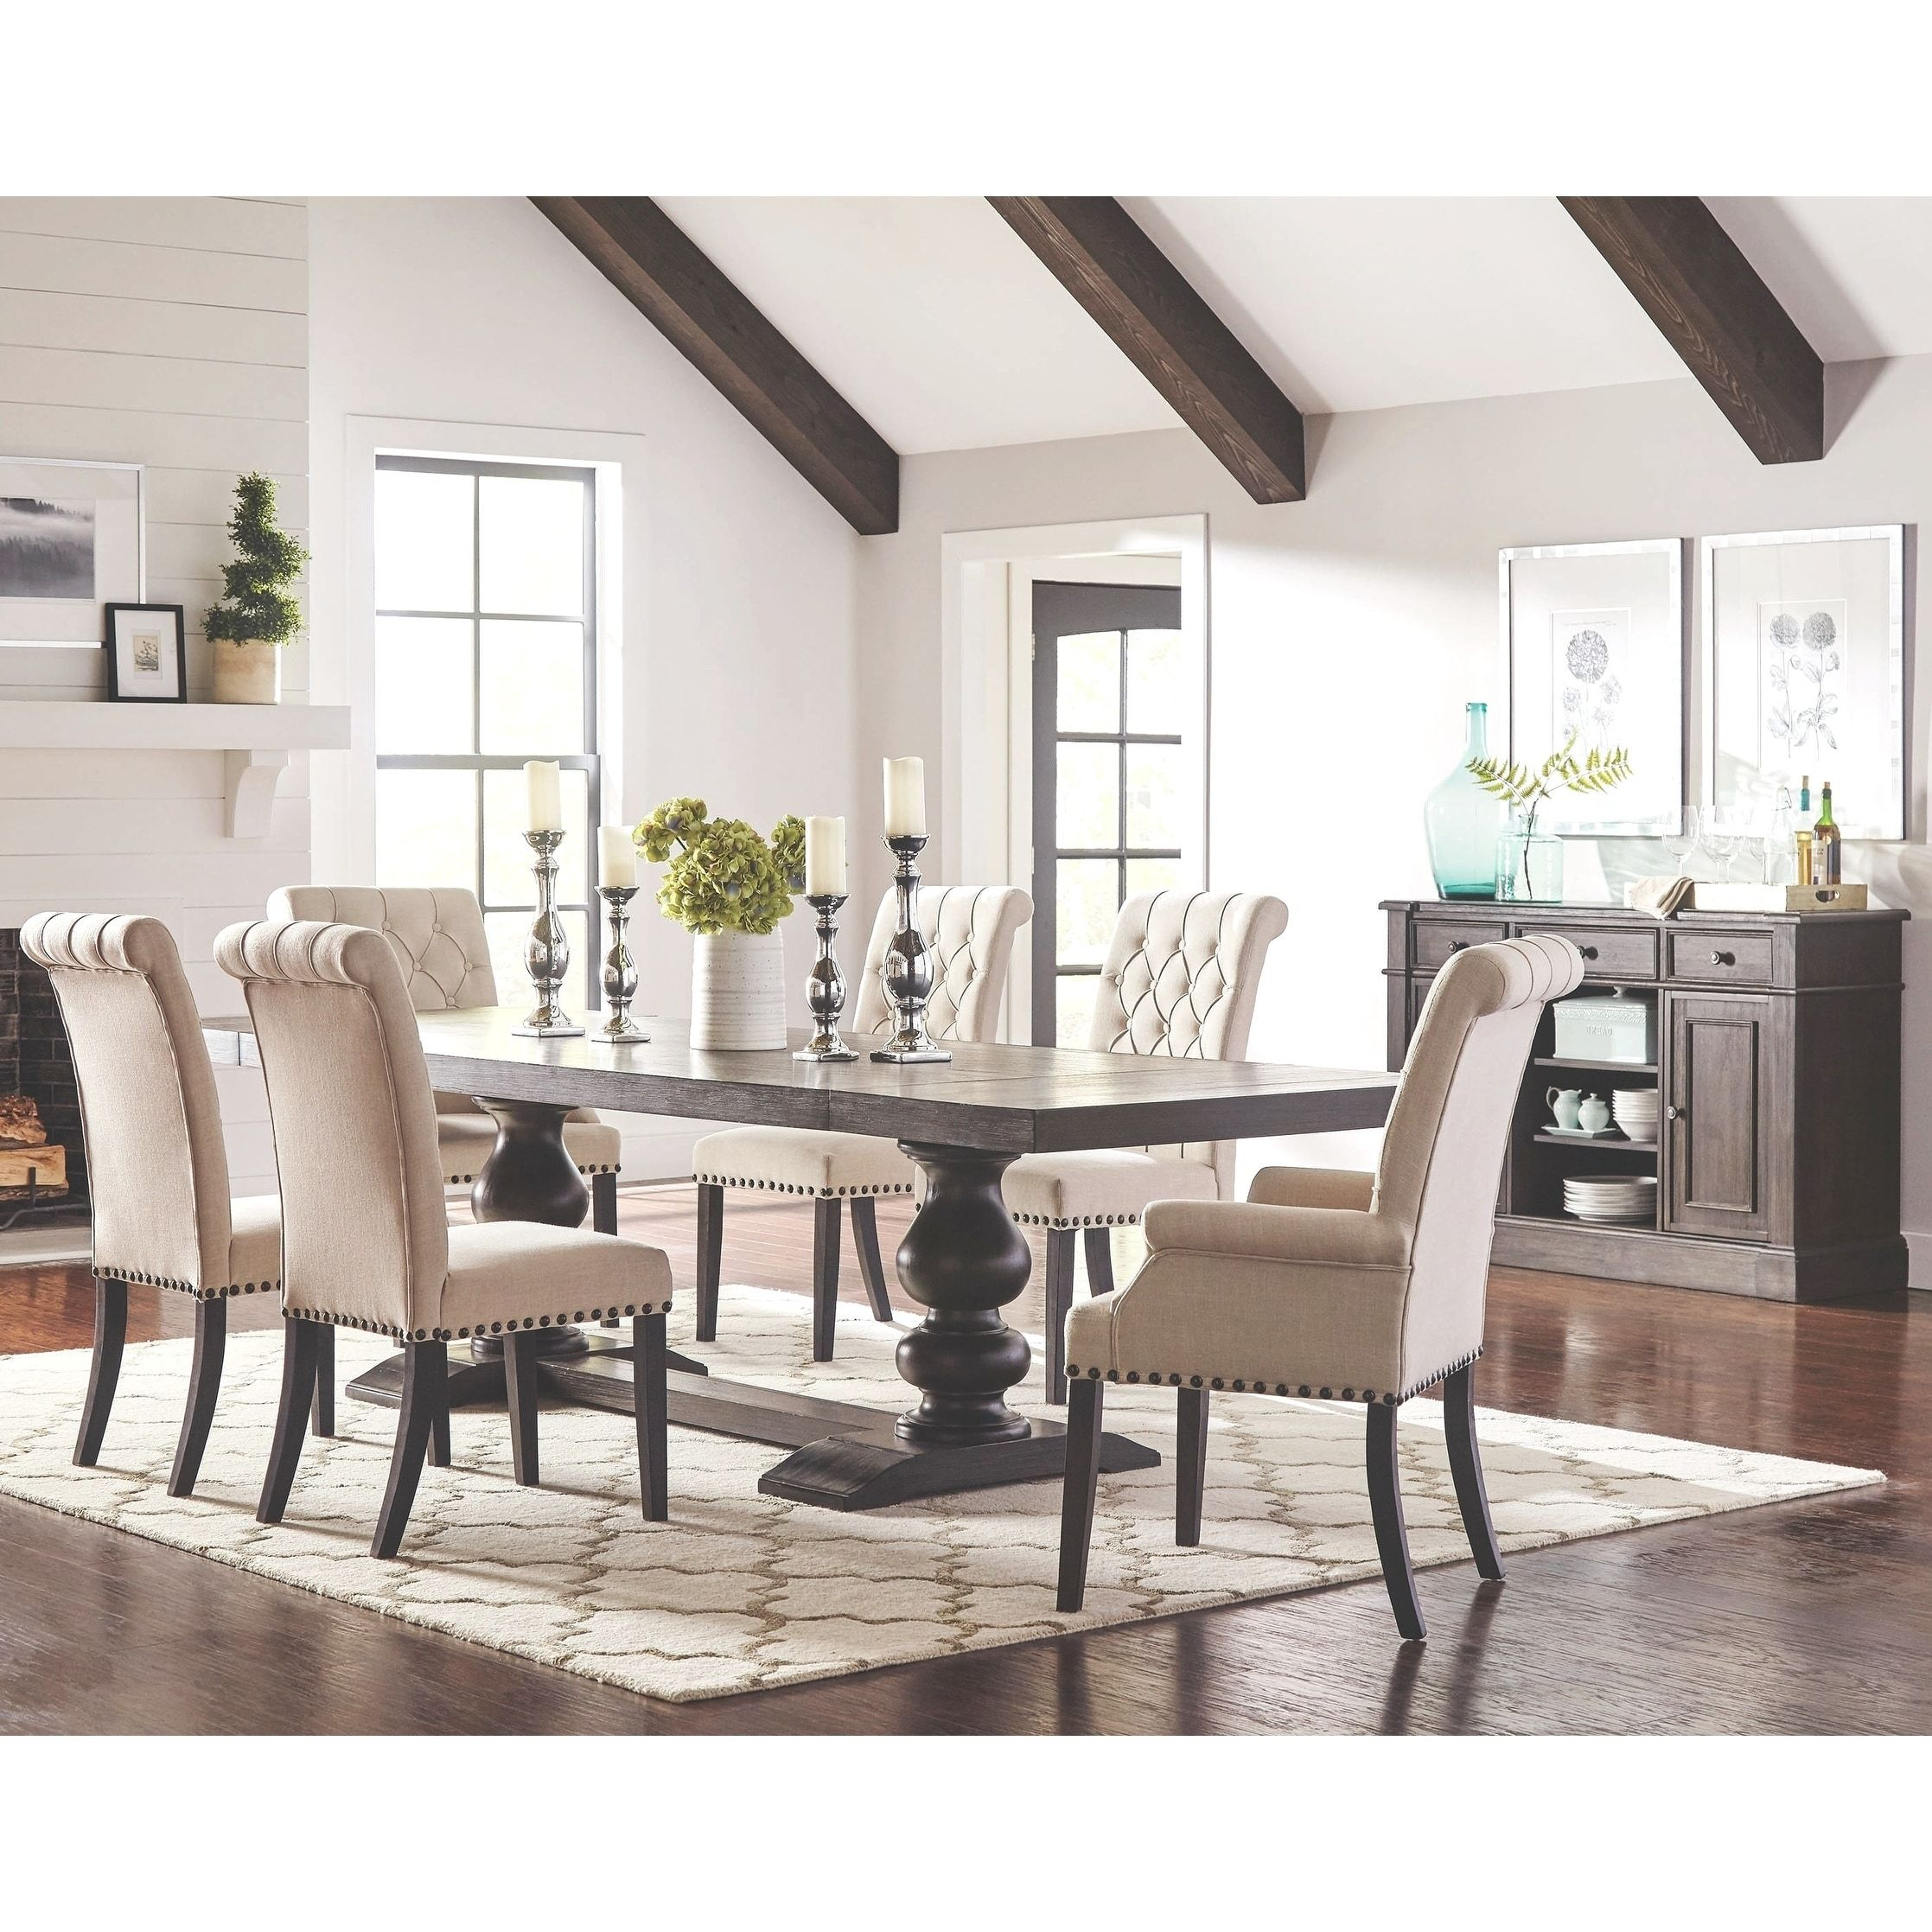 43+ Dining room set with server Best Choice